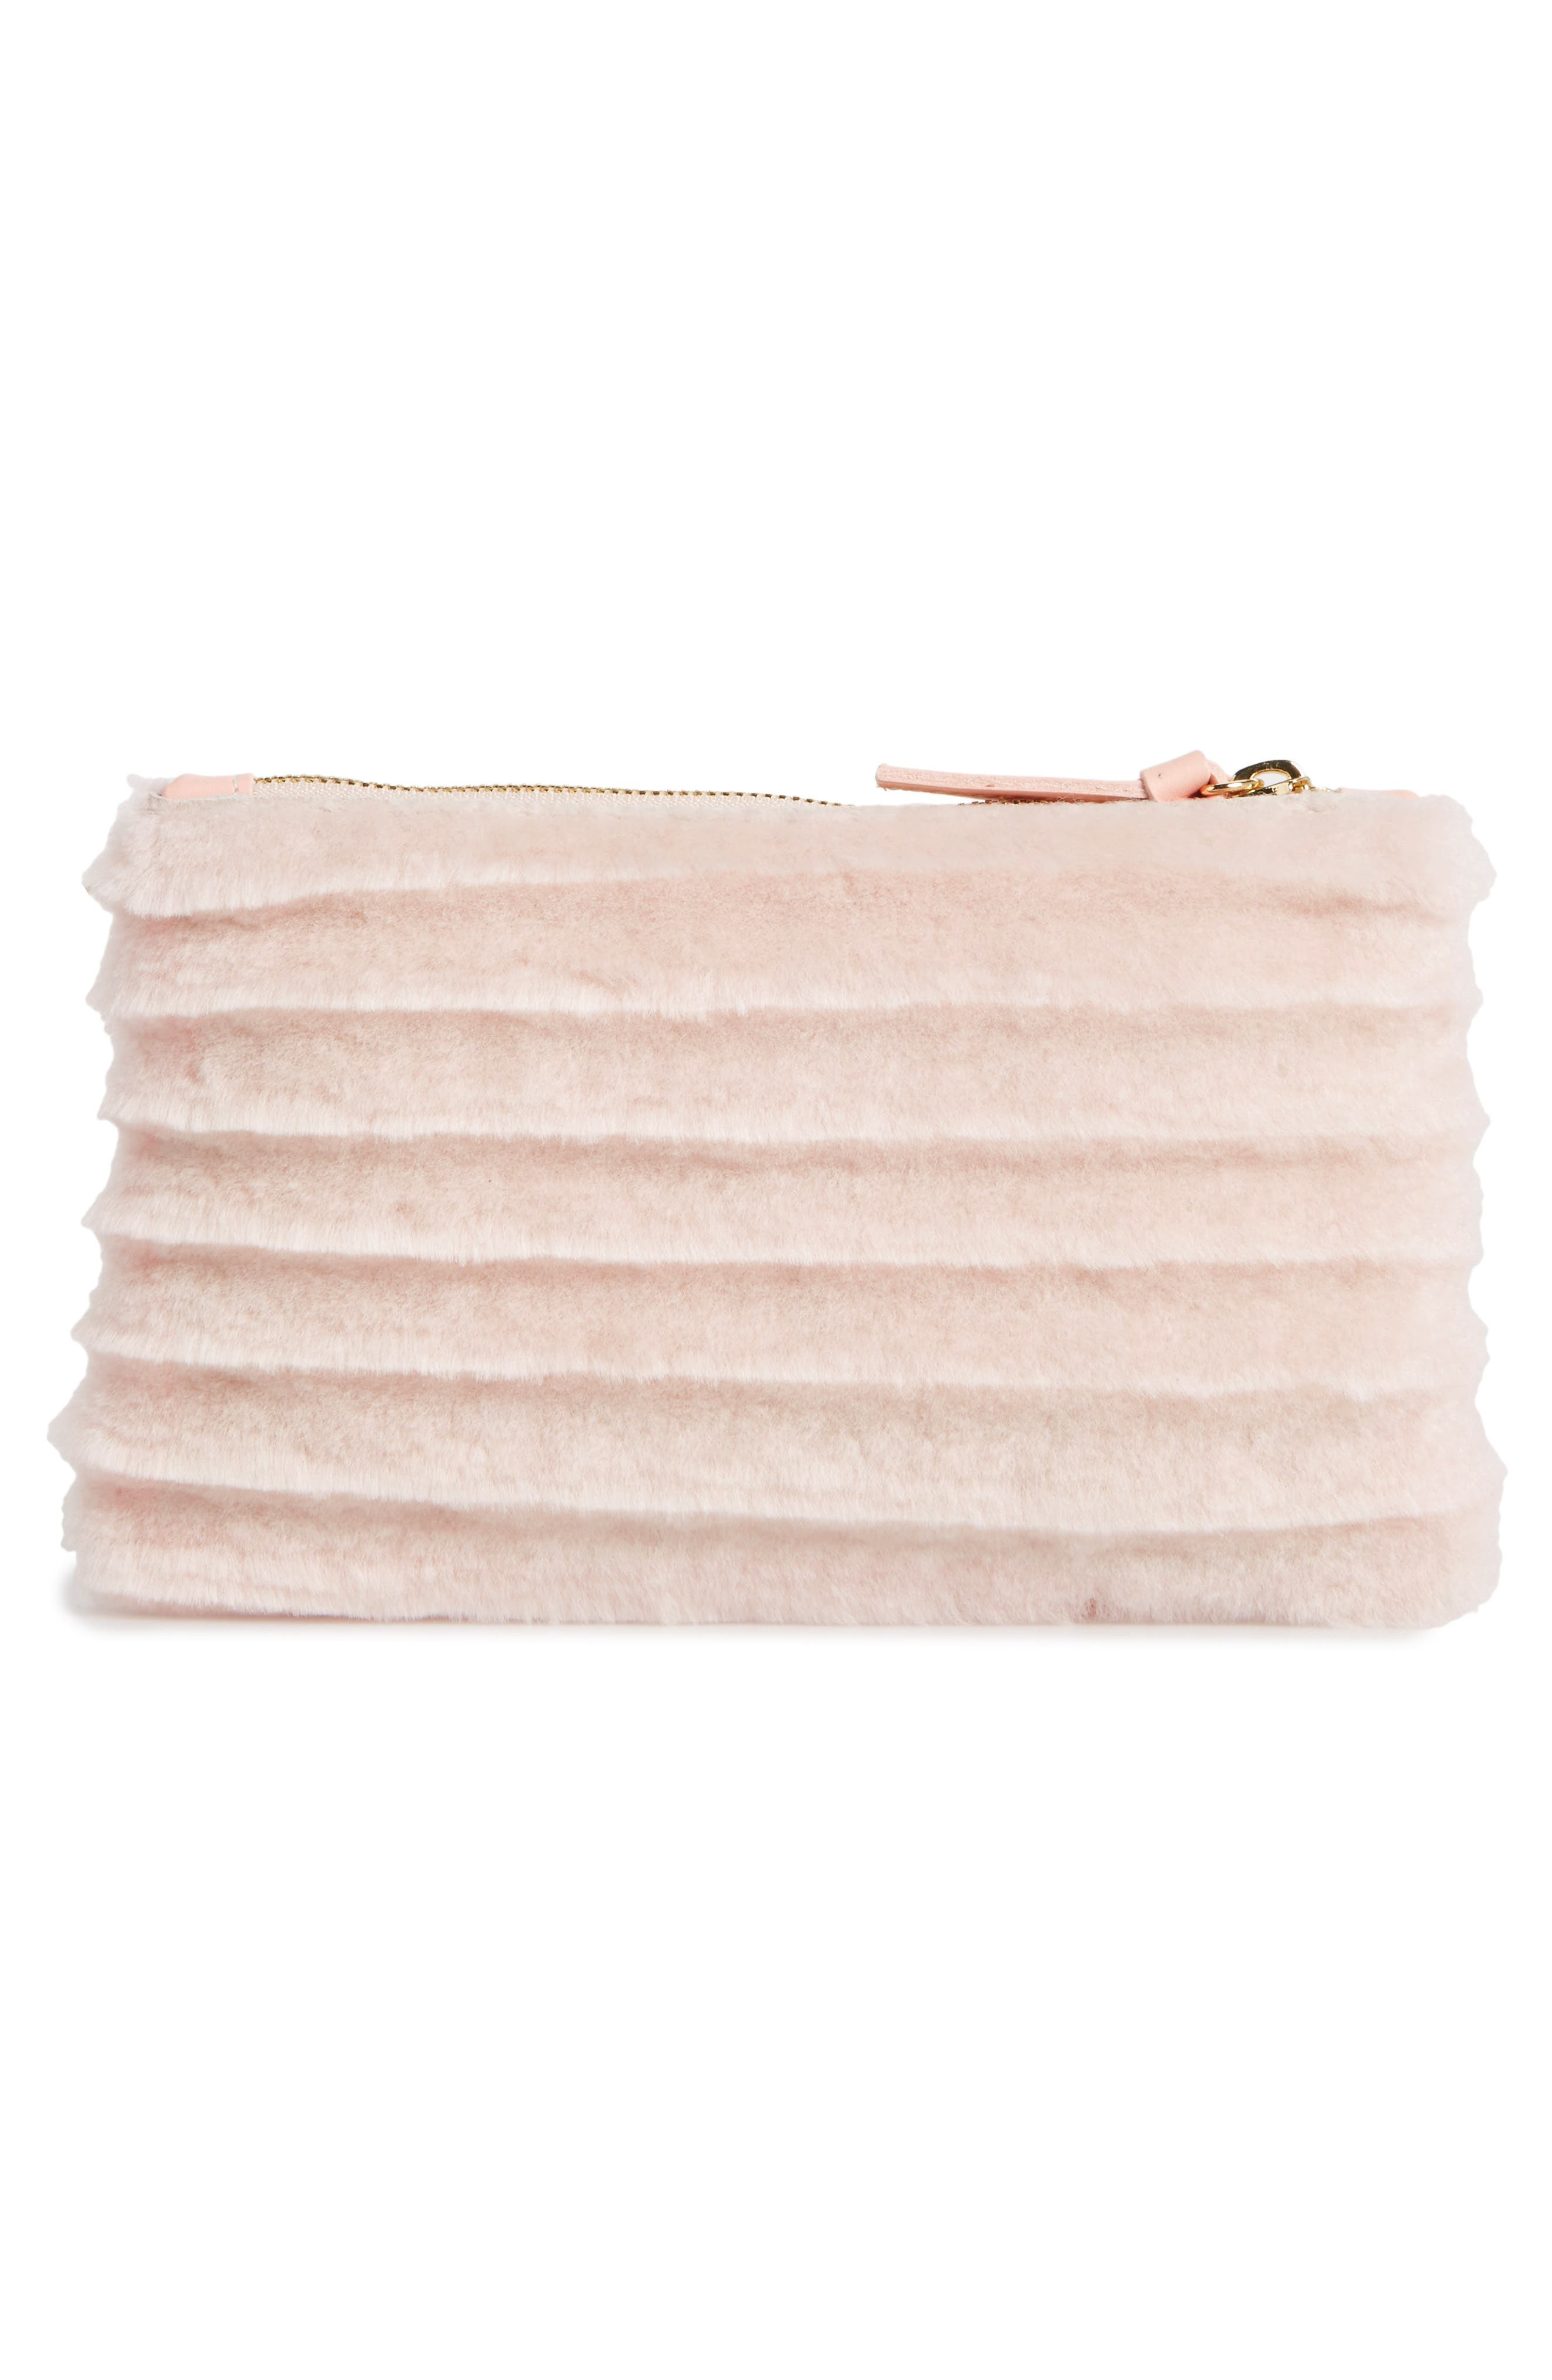 Genuine Shearling Pouch,                             Alternate thumbnail 3, color,